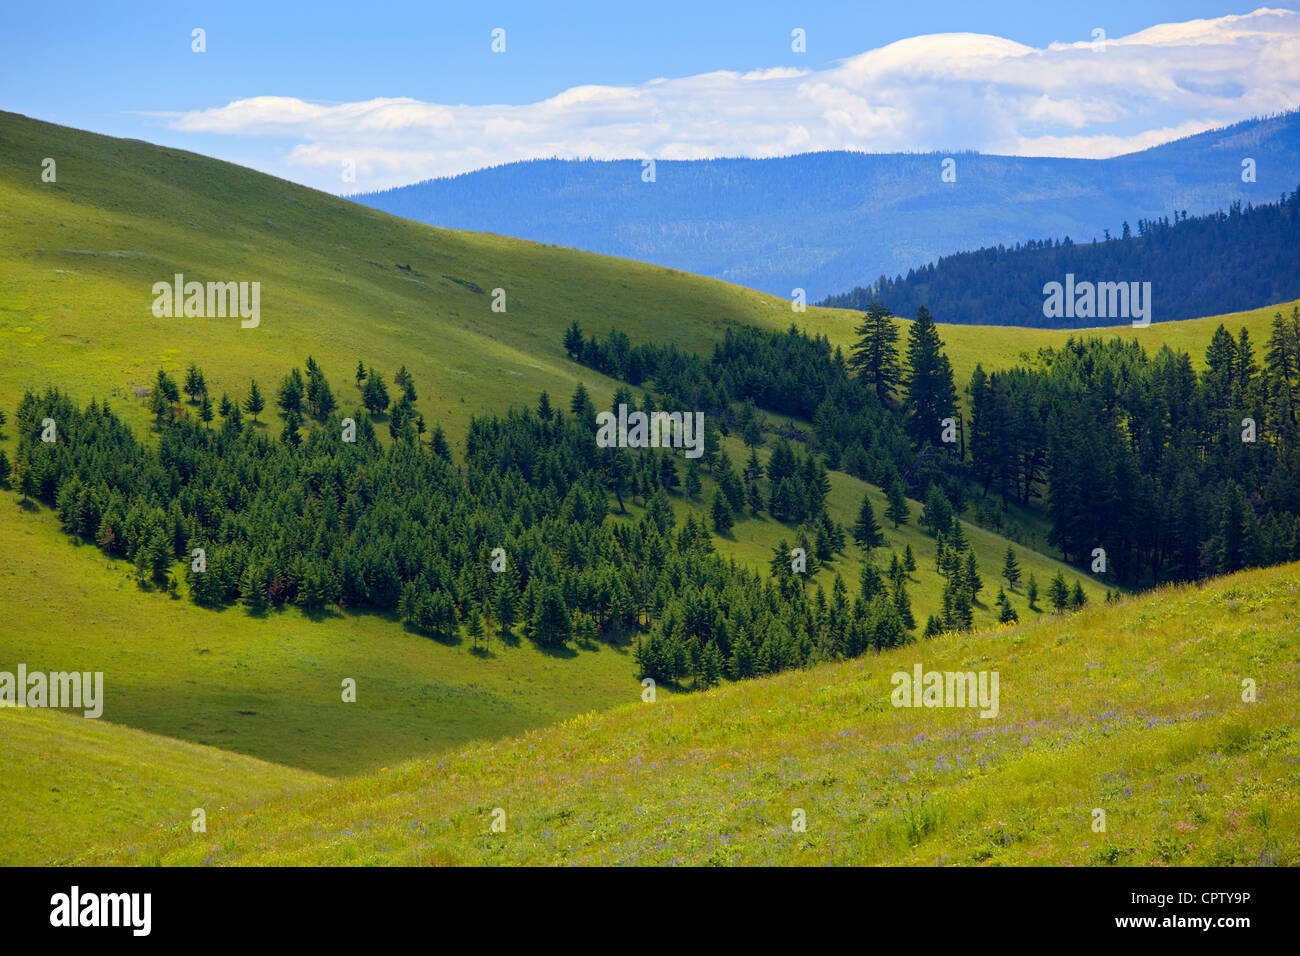 National Bison Range Wildlife Refuge Rolling prairie hillsides folded with scattered forest margins - Stock Image